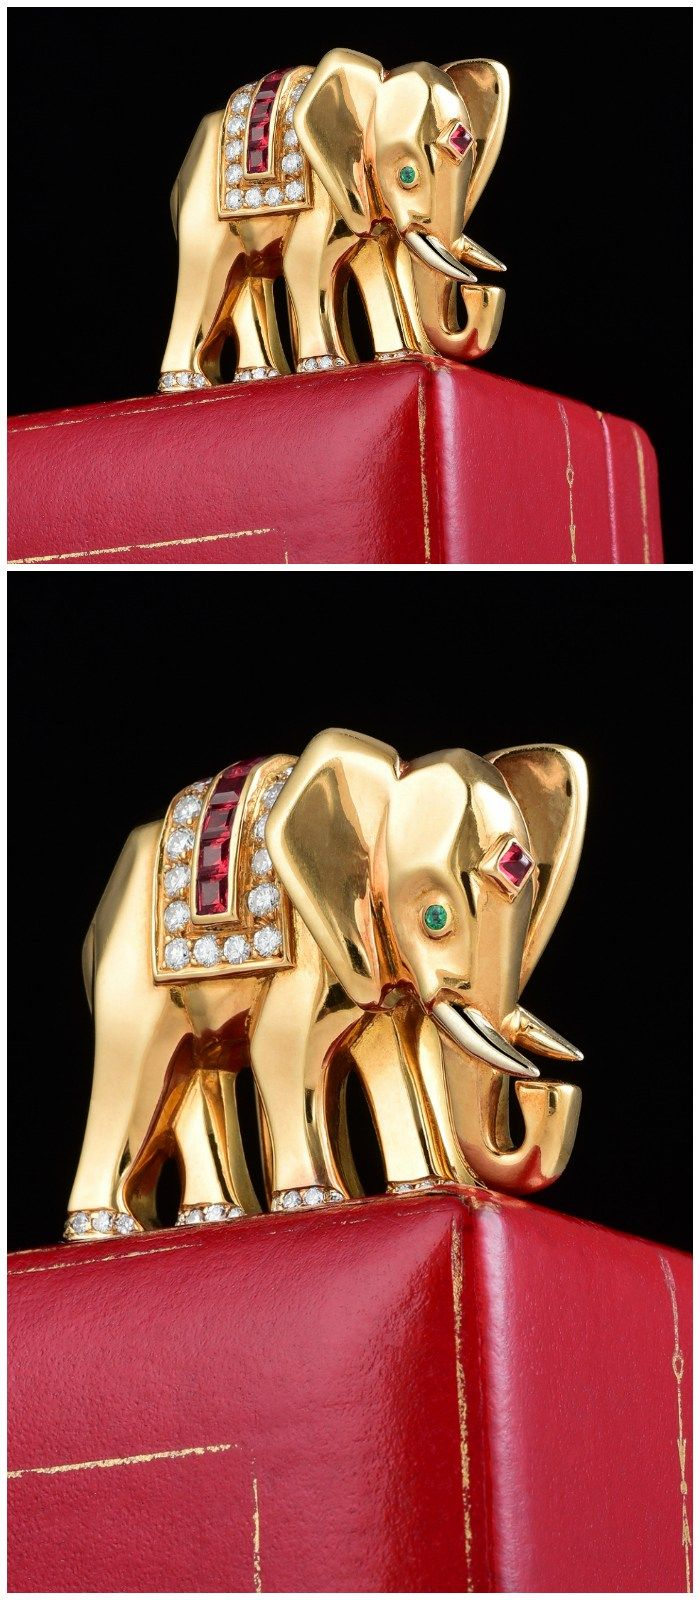 A Cartier diamond, ruby, and emerald elephant pin in 18K yellow gold.